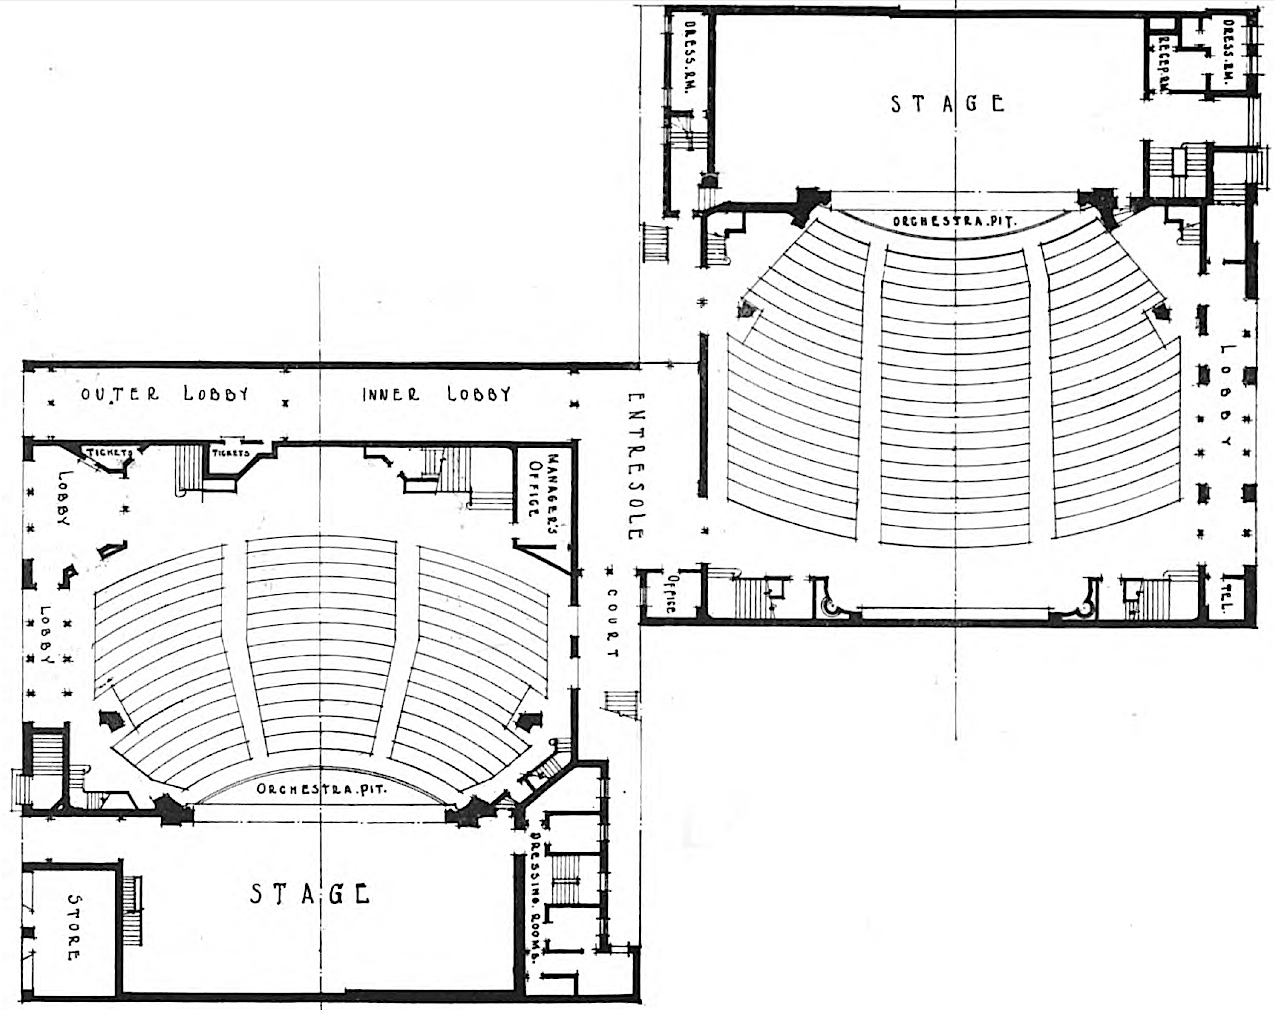 File:Times Square and Apollo theaters, first floor plan